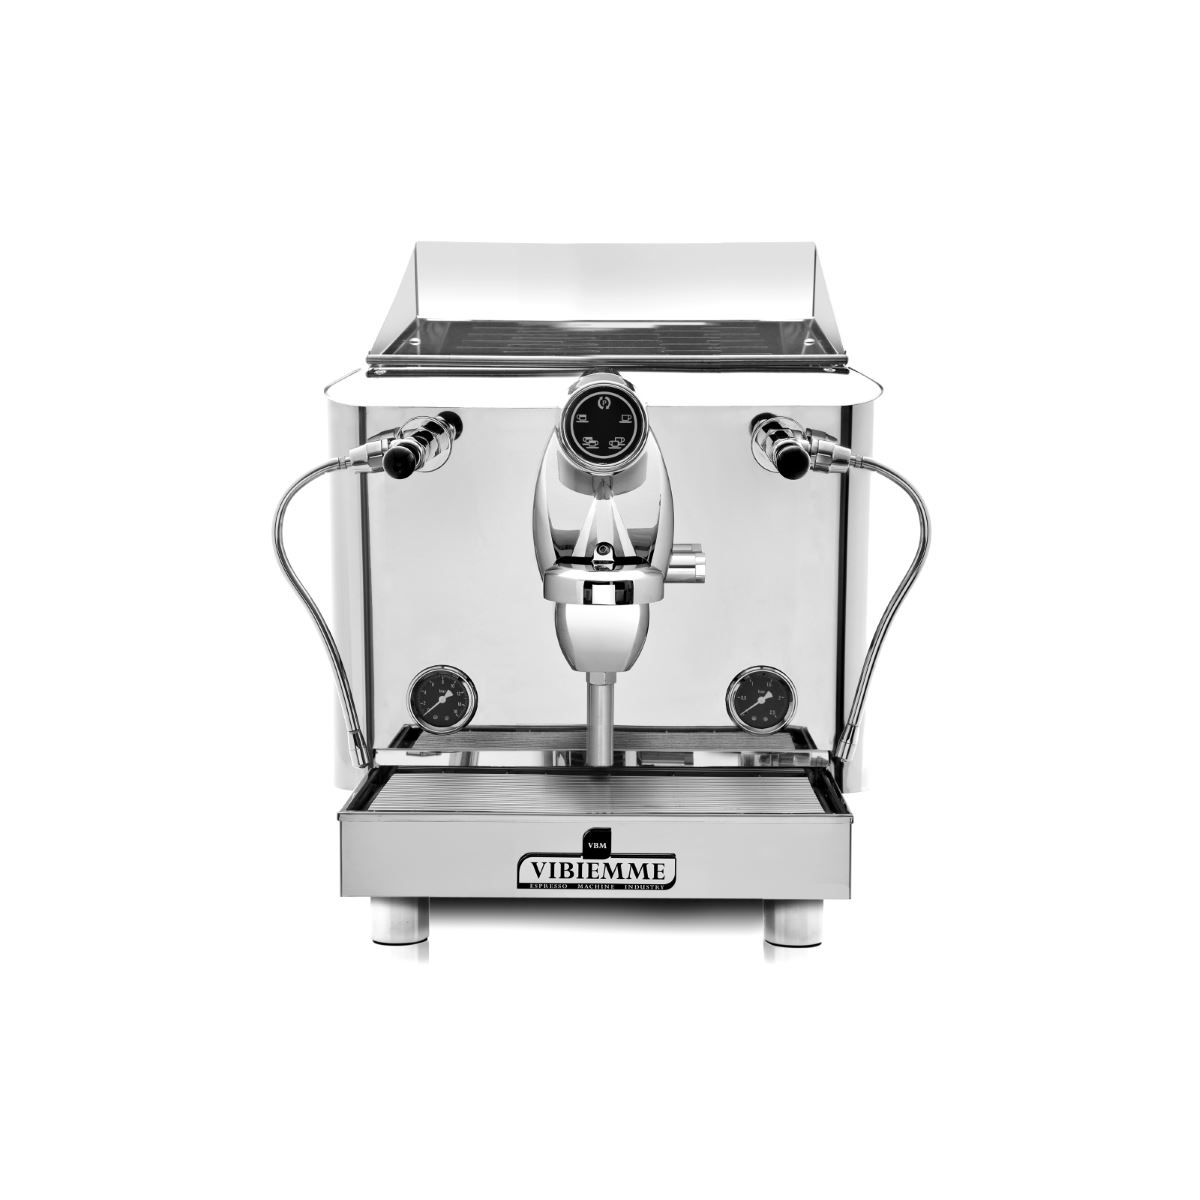 Professional coffee machine Vibiemme Lollo Elettronica, 1 group